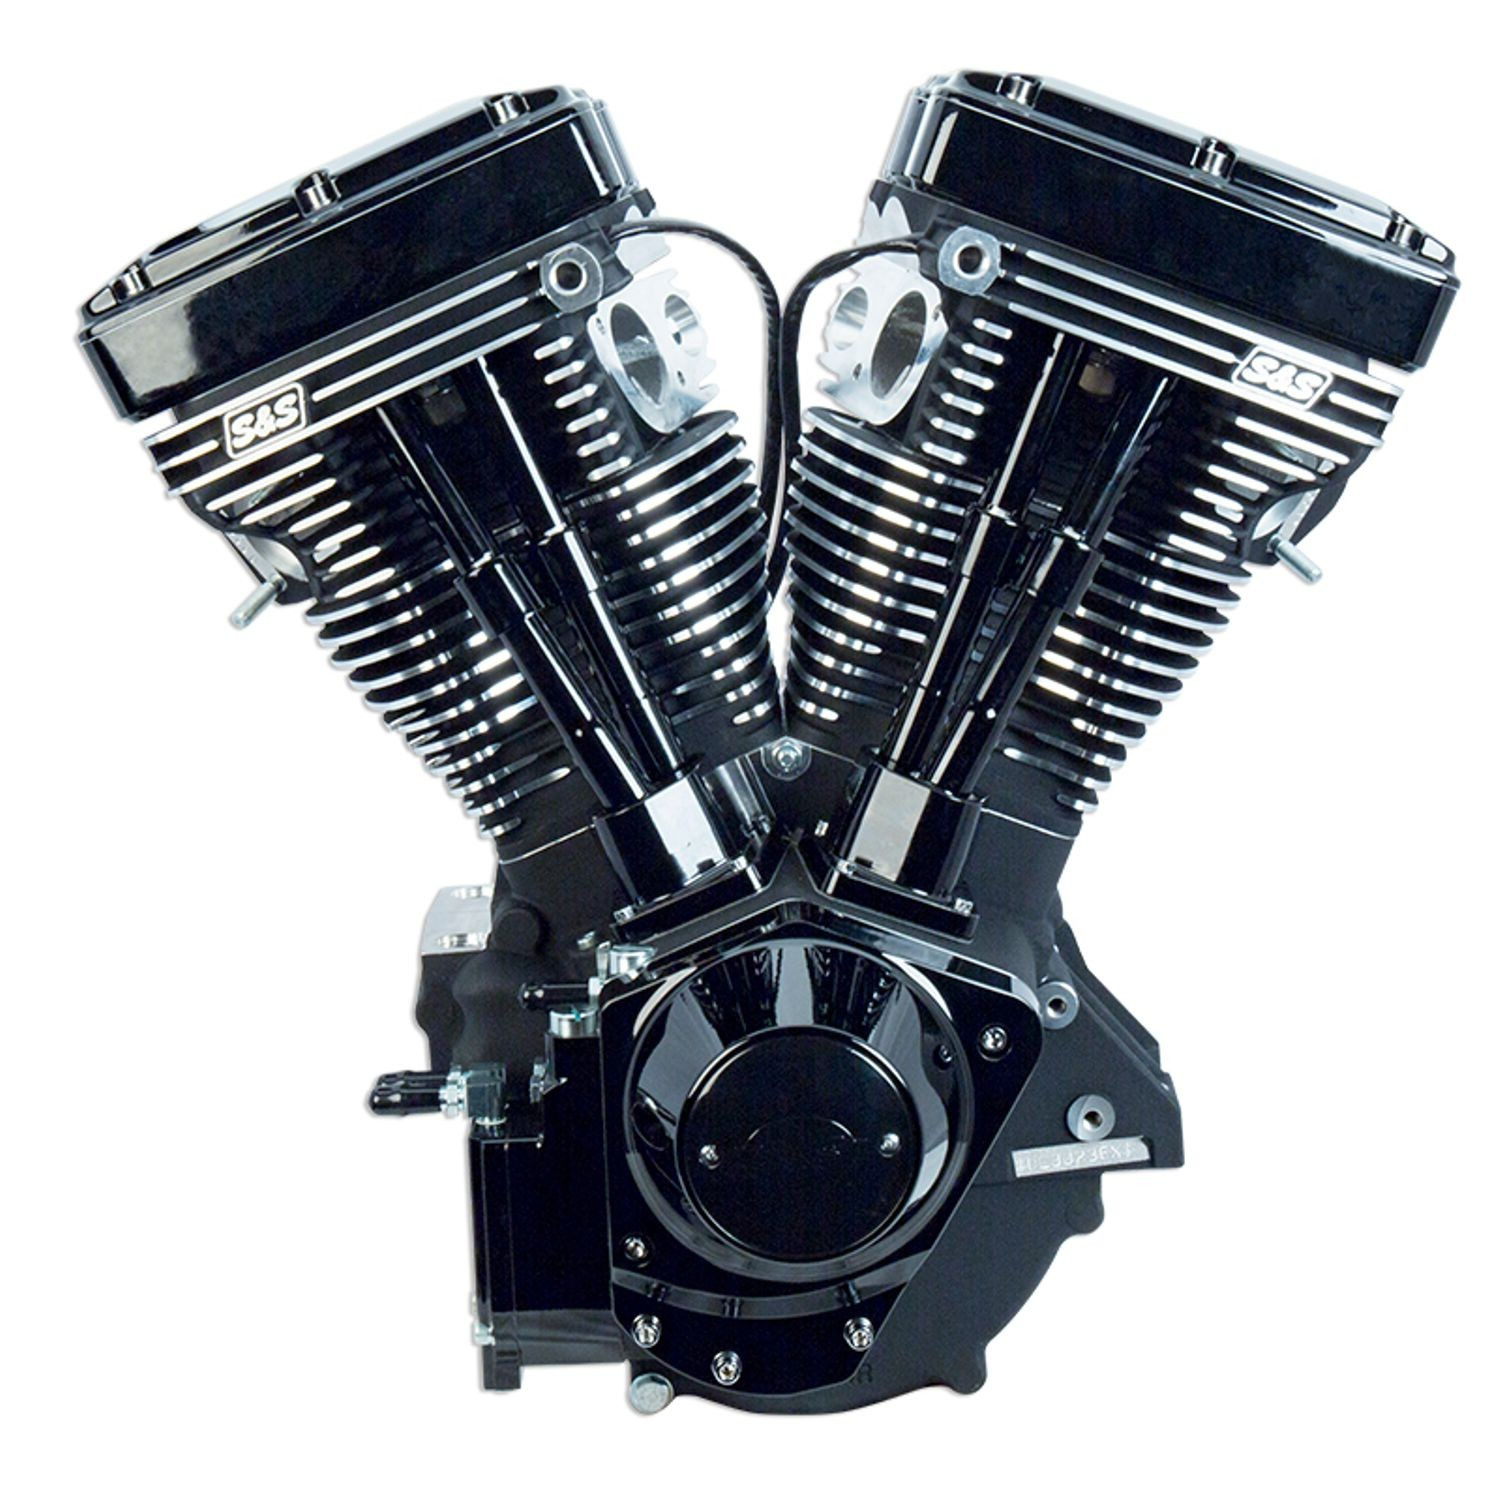 v111 black edition longblock engine for 1984 99 hd models with